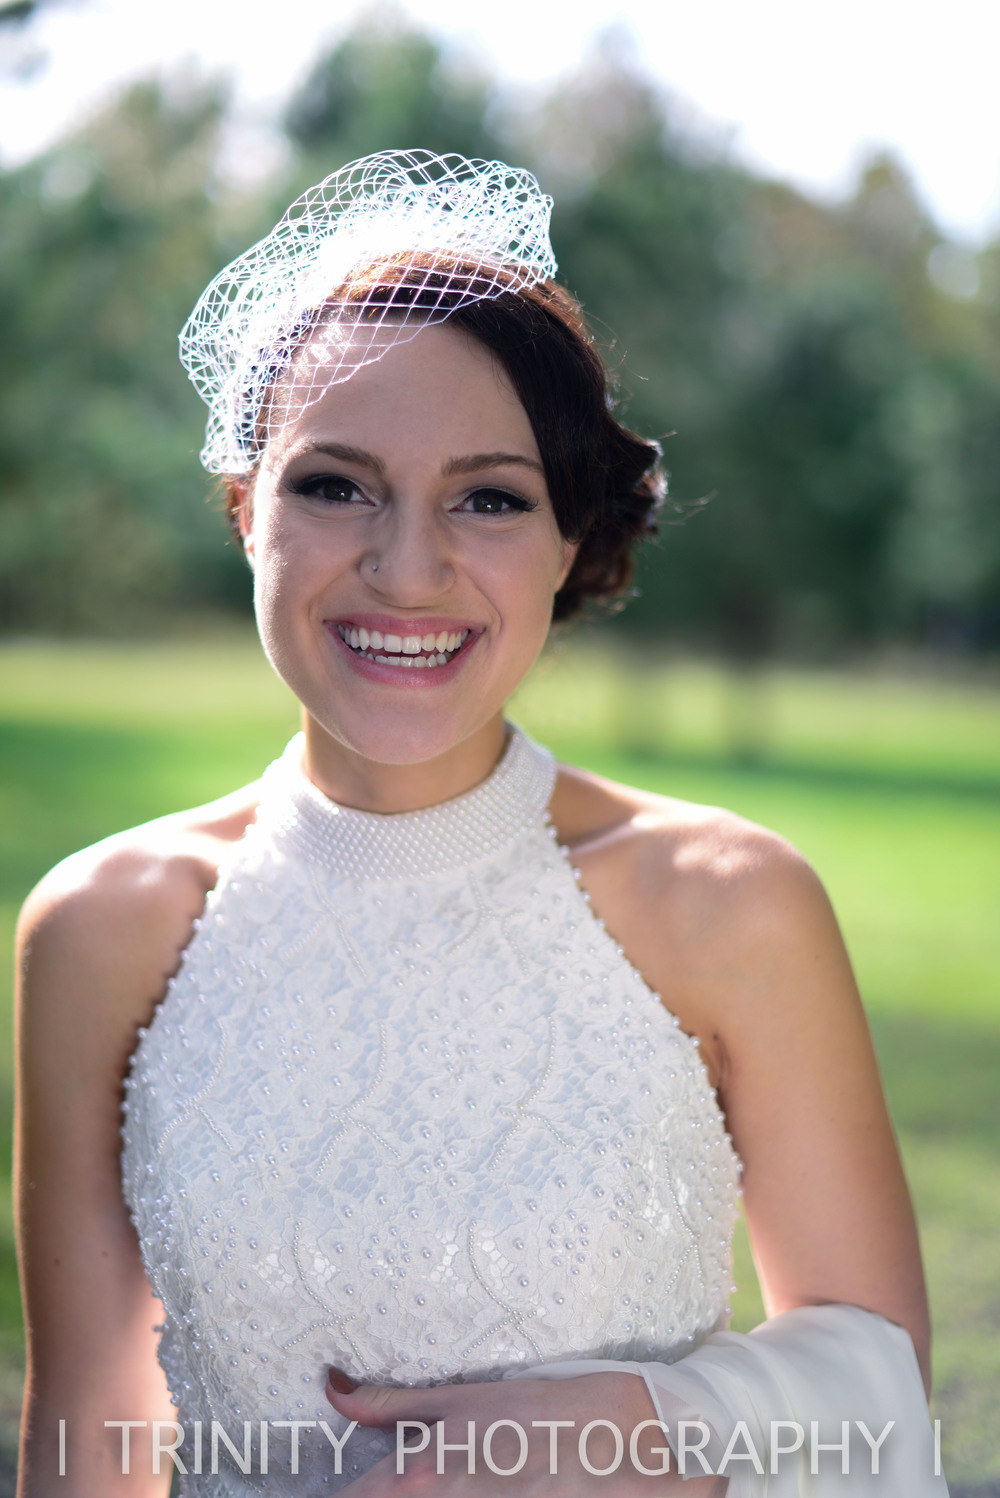 Jessica looked picture perfect in her birdcage veil and beaded vintage dress.